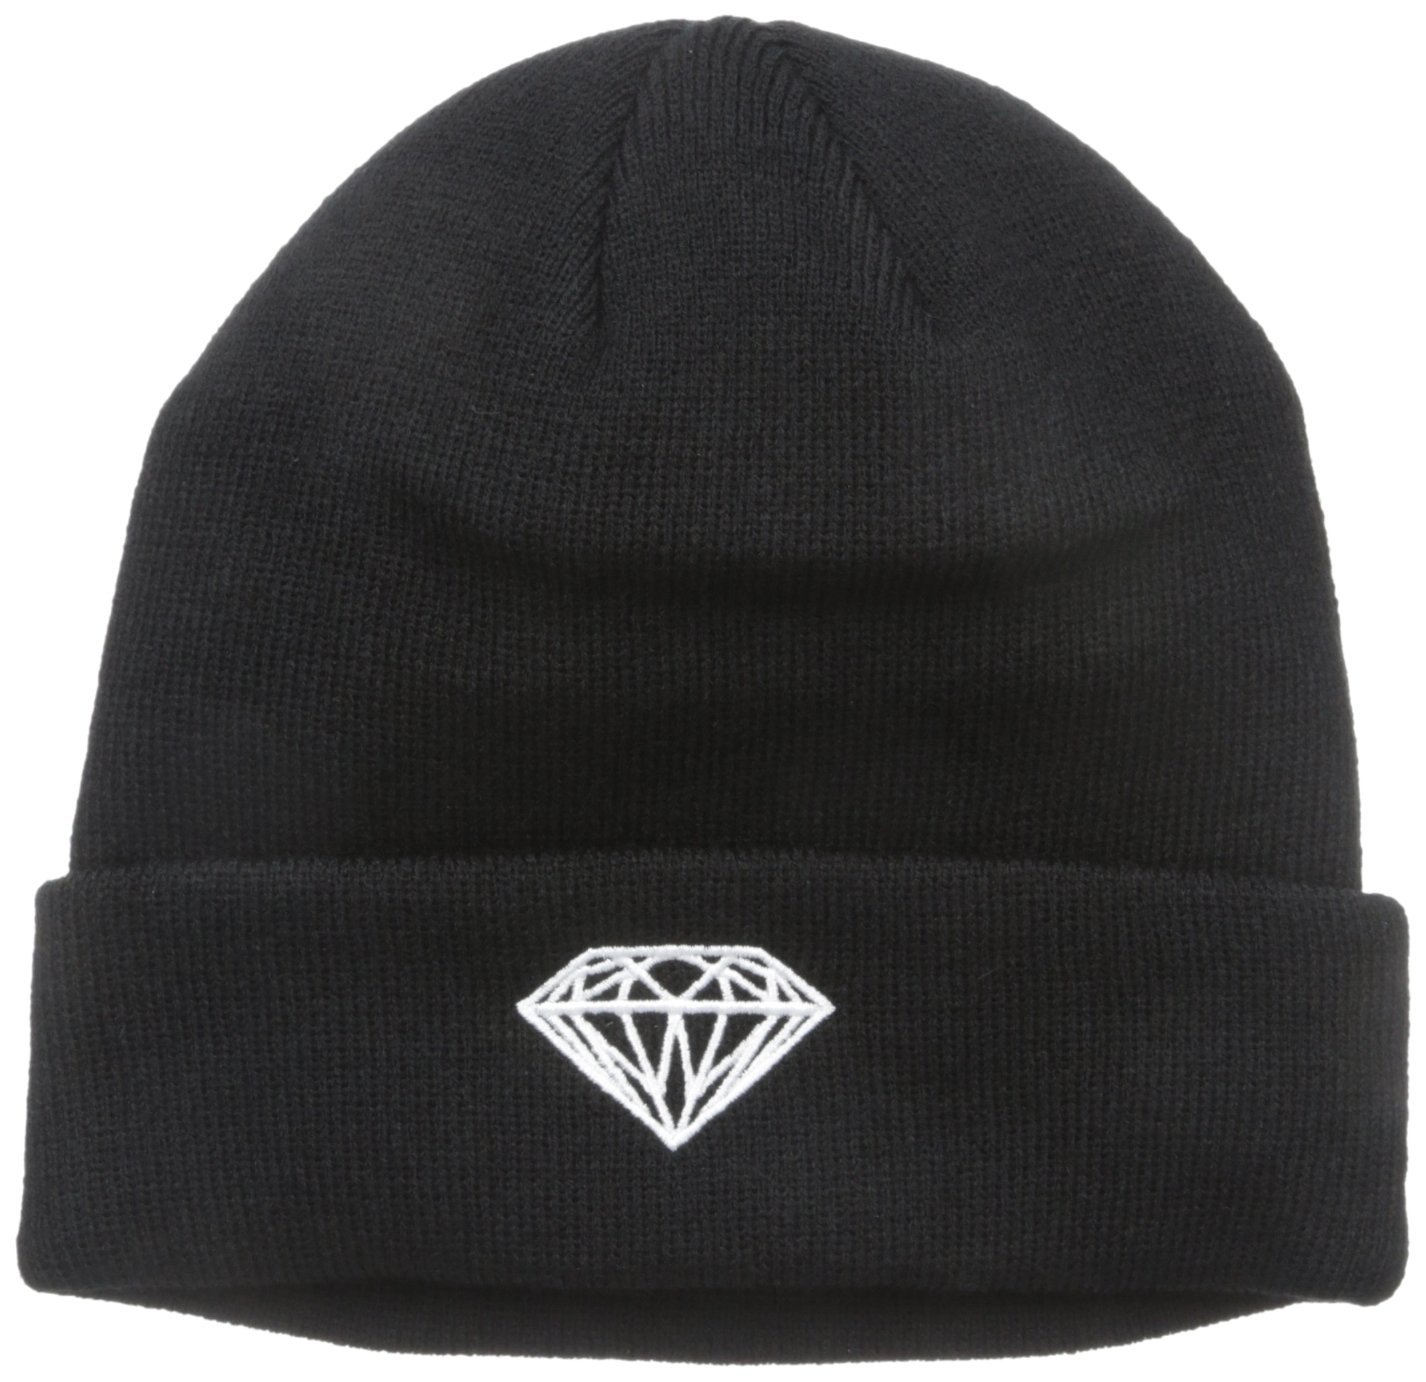 Diamond Supply Co. Men's Brilliant Beanie, Black, One-Size